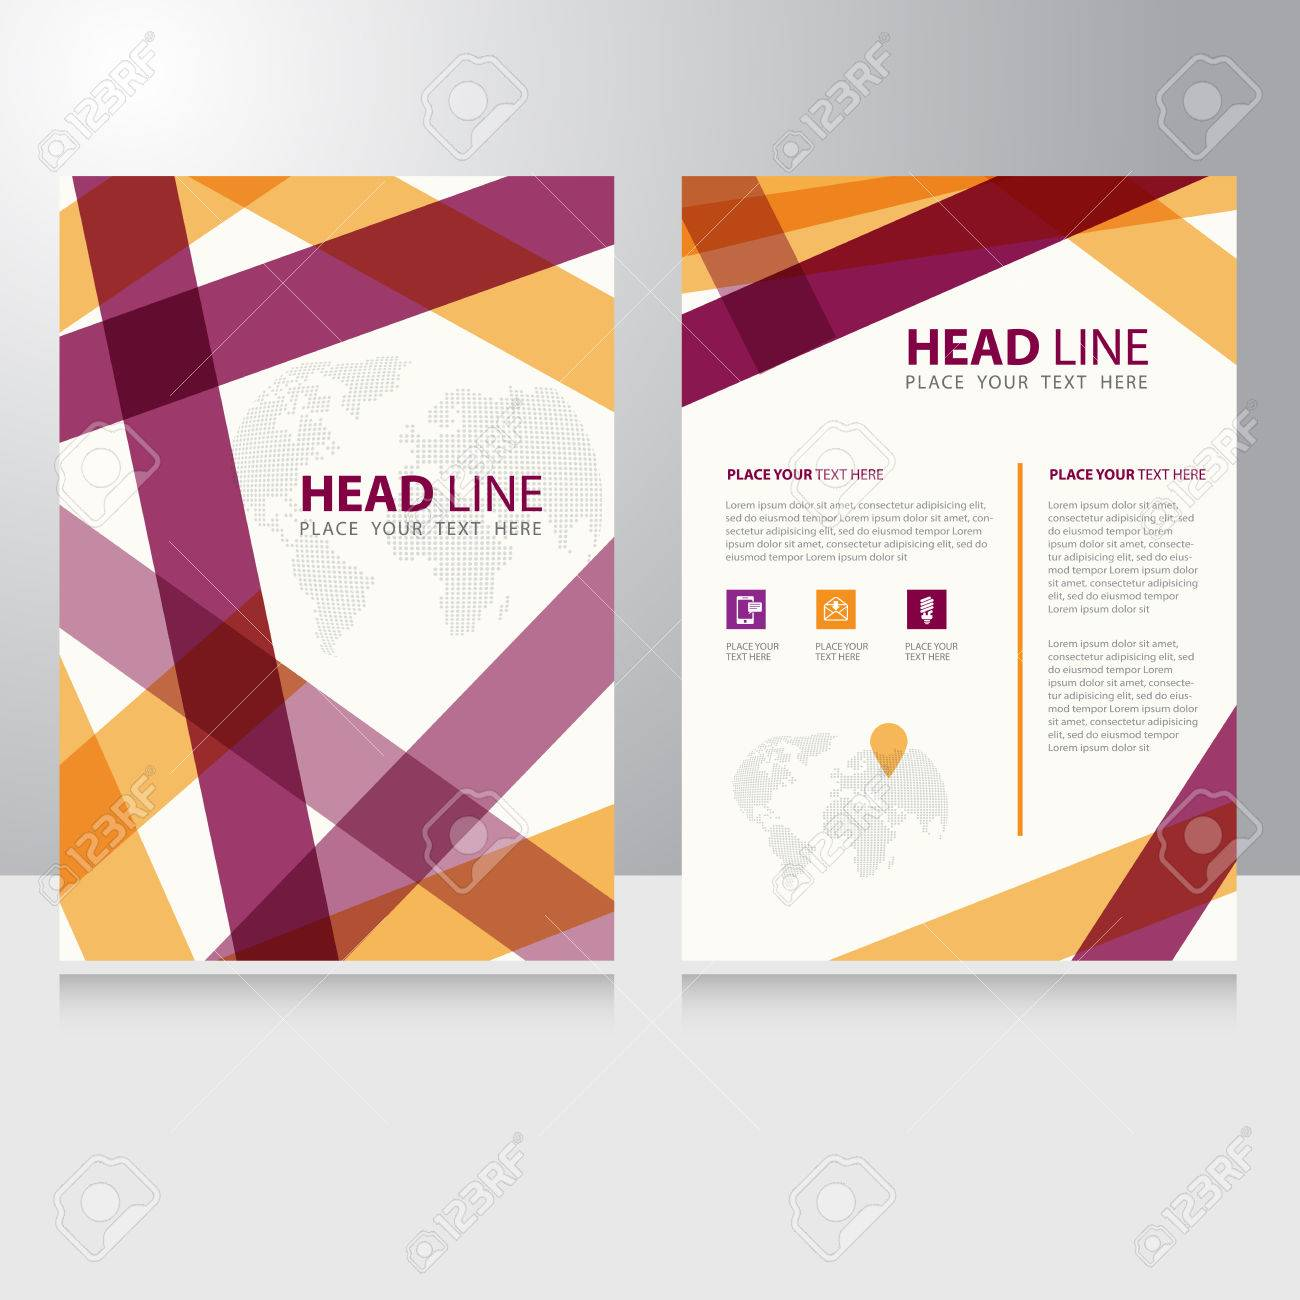 Abstract Business Internet Online Communication Brochure Flyer ...